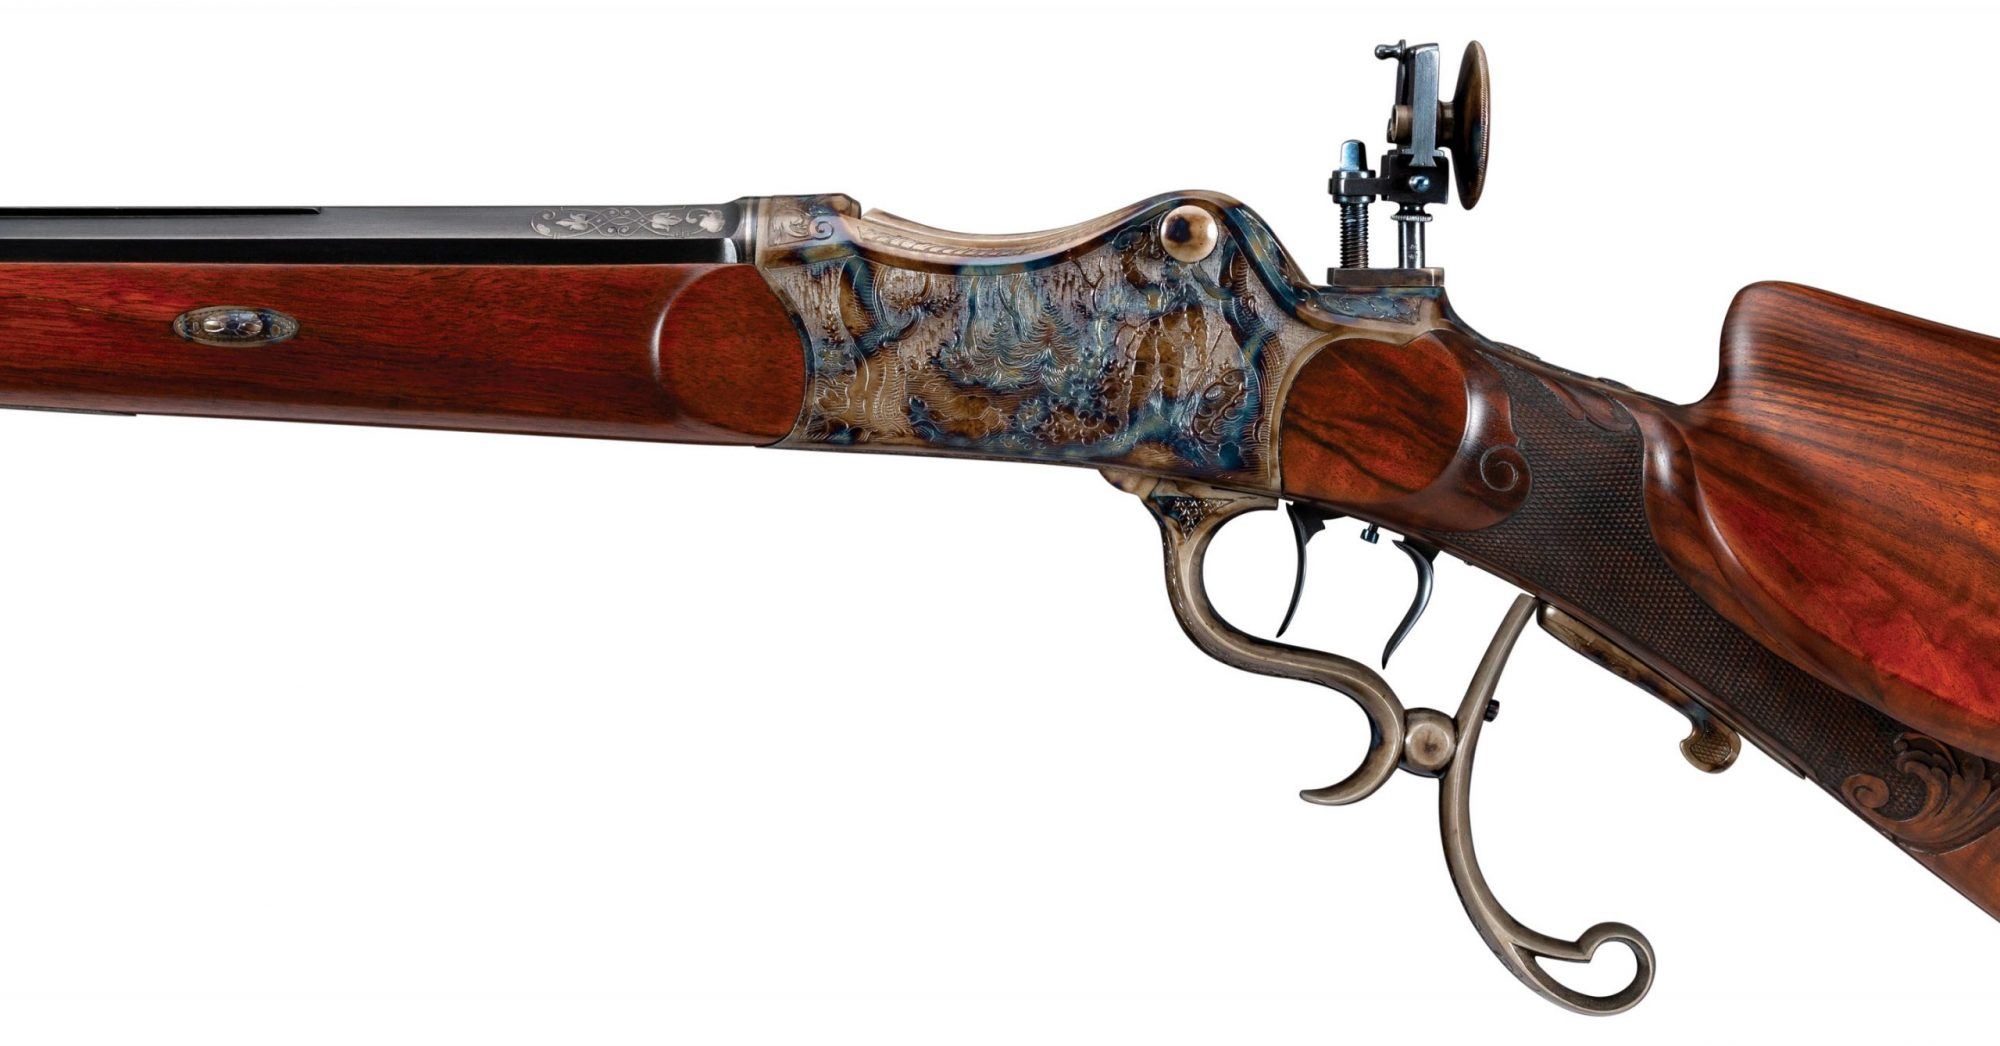 Photo of an engraved Martini style German Schuetzen rifle after restoration by Turnbull Restoration Co. of Bloomfield, NY